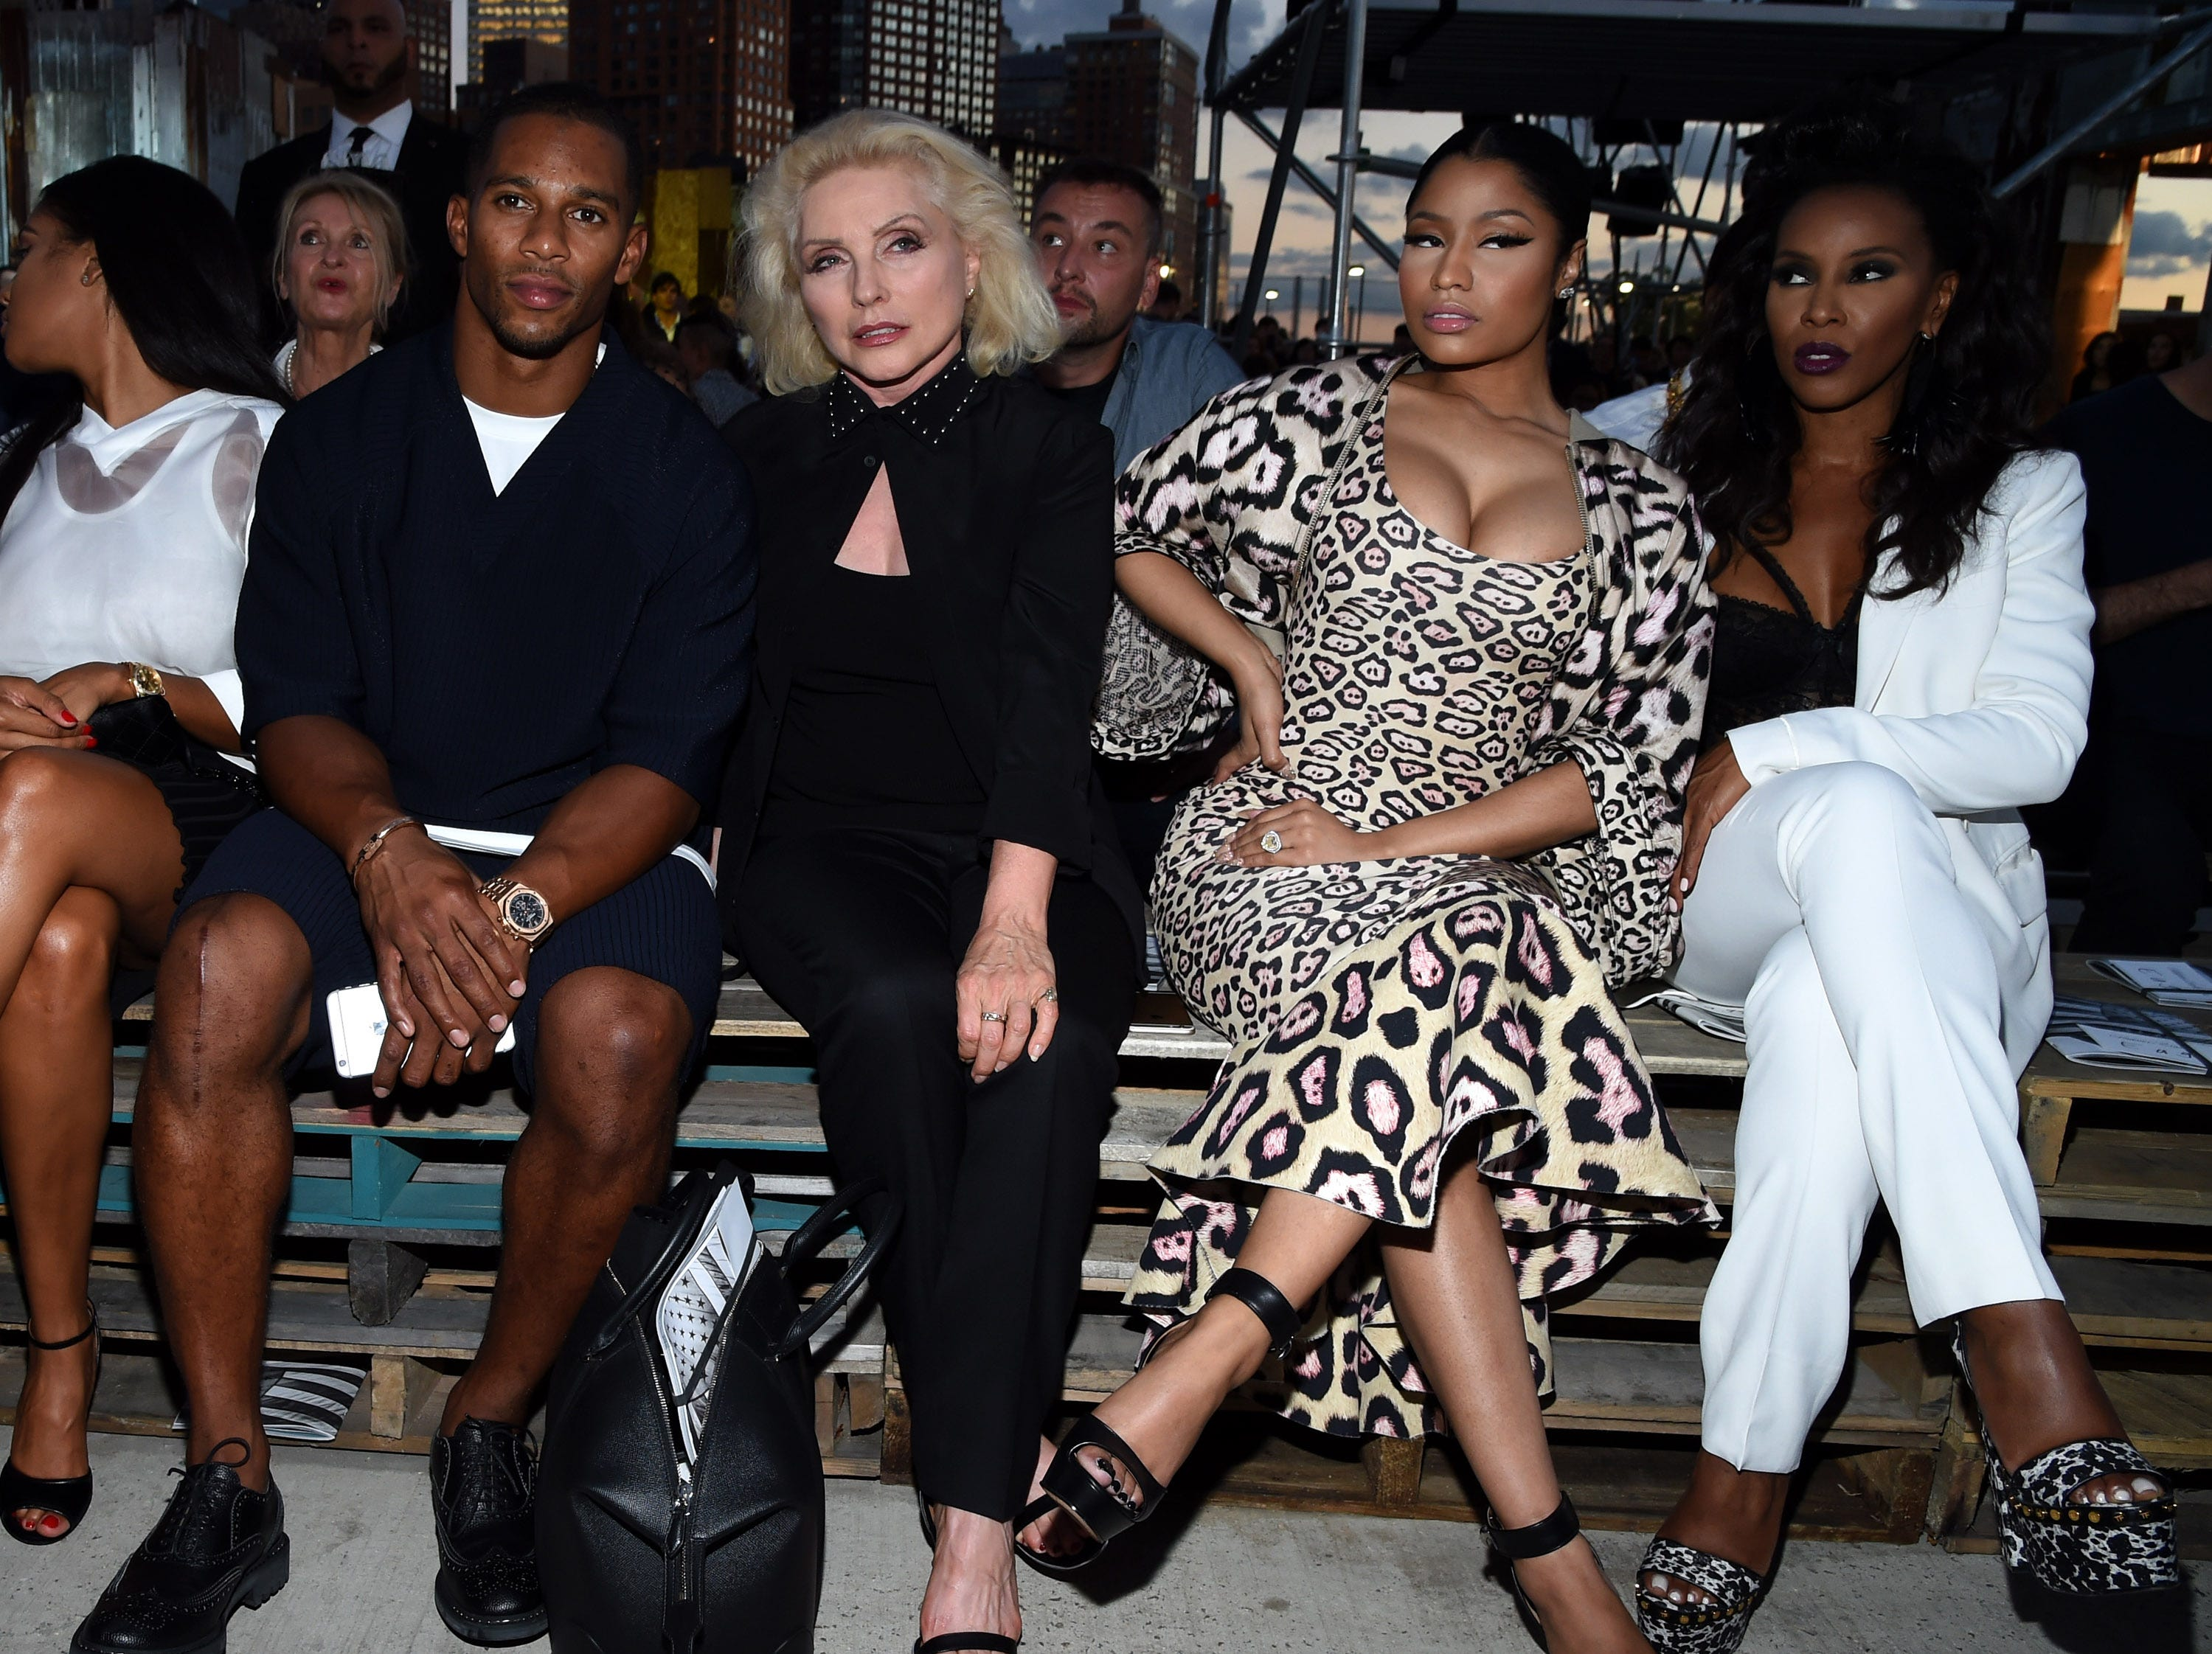 NEW YORK, NY - SEPTEMBER 11:  (L-R) Victor Cruz, Debbie Harry, Nicki Minaj and June Ambrose attend the Givenchy fashion show during Spring 2016 New York Fashion Week at Pier 26 at Hudson River Park on September 11, 2015 in New York City.  (Photo by Larry Busacca/Getty Images) ORG XMIT: 575593401 ORIG FILE ID: 487807220